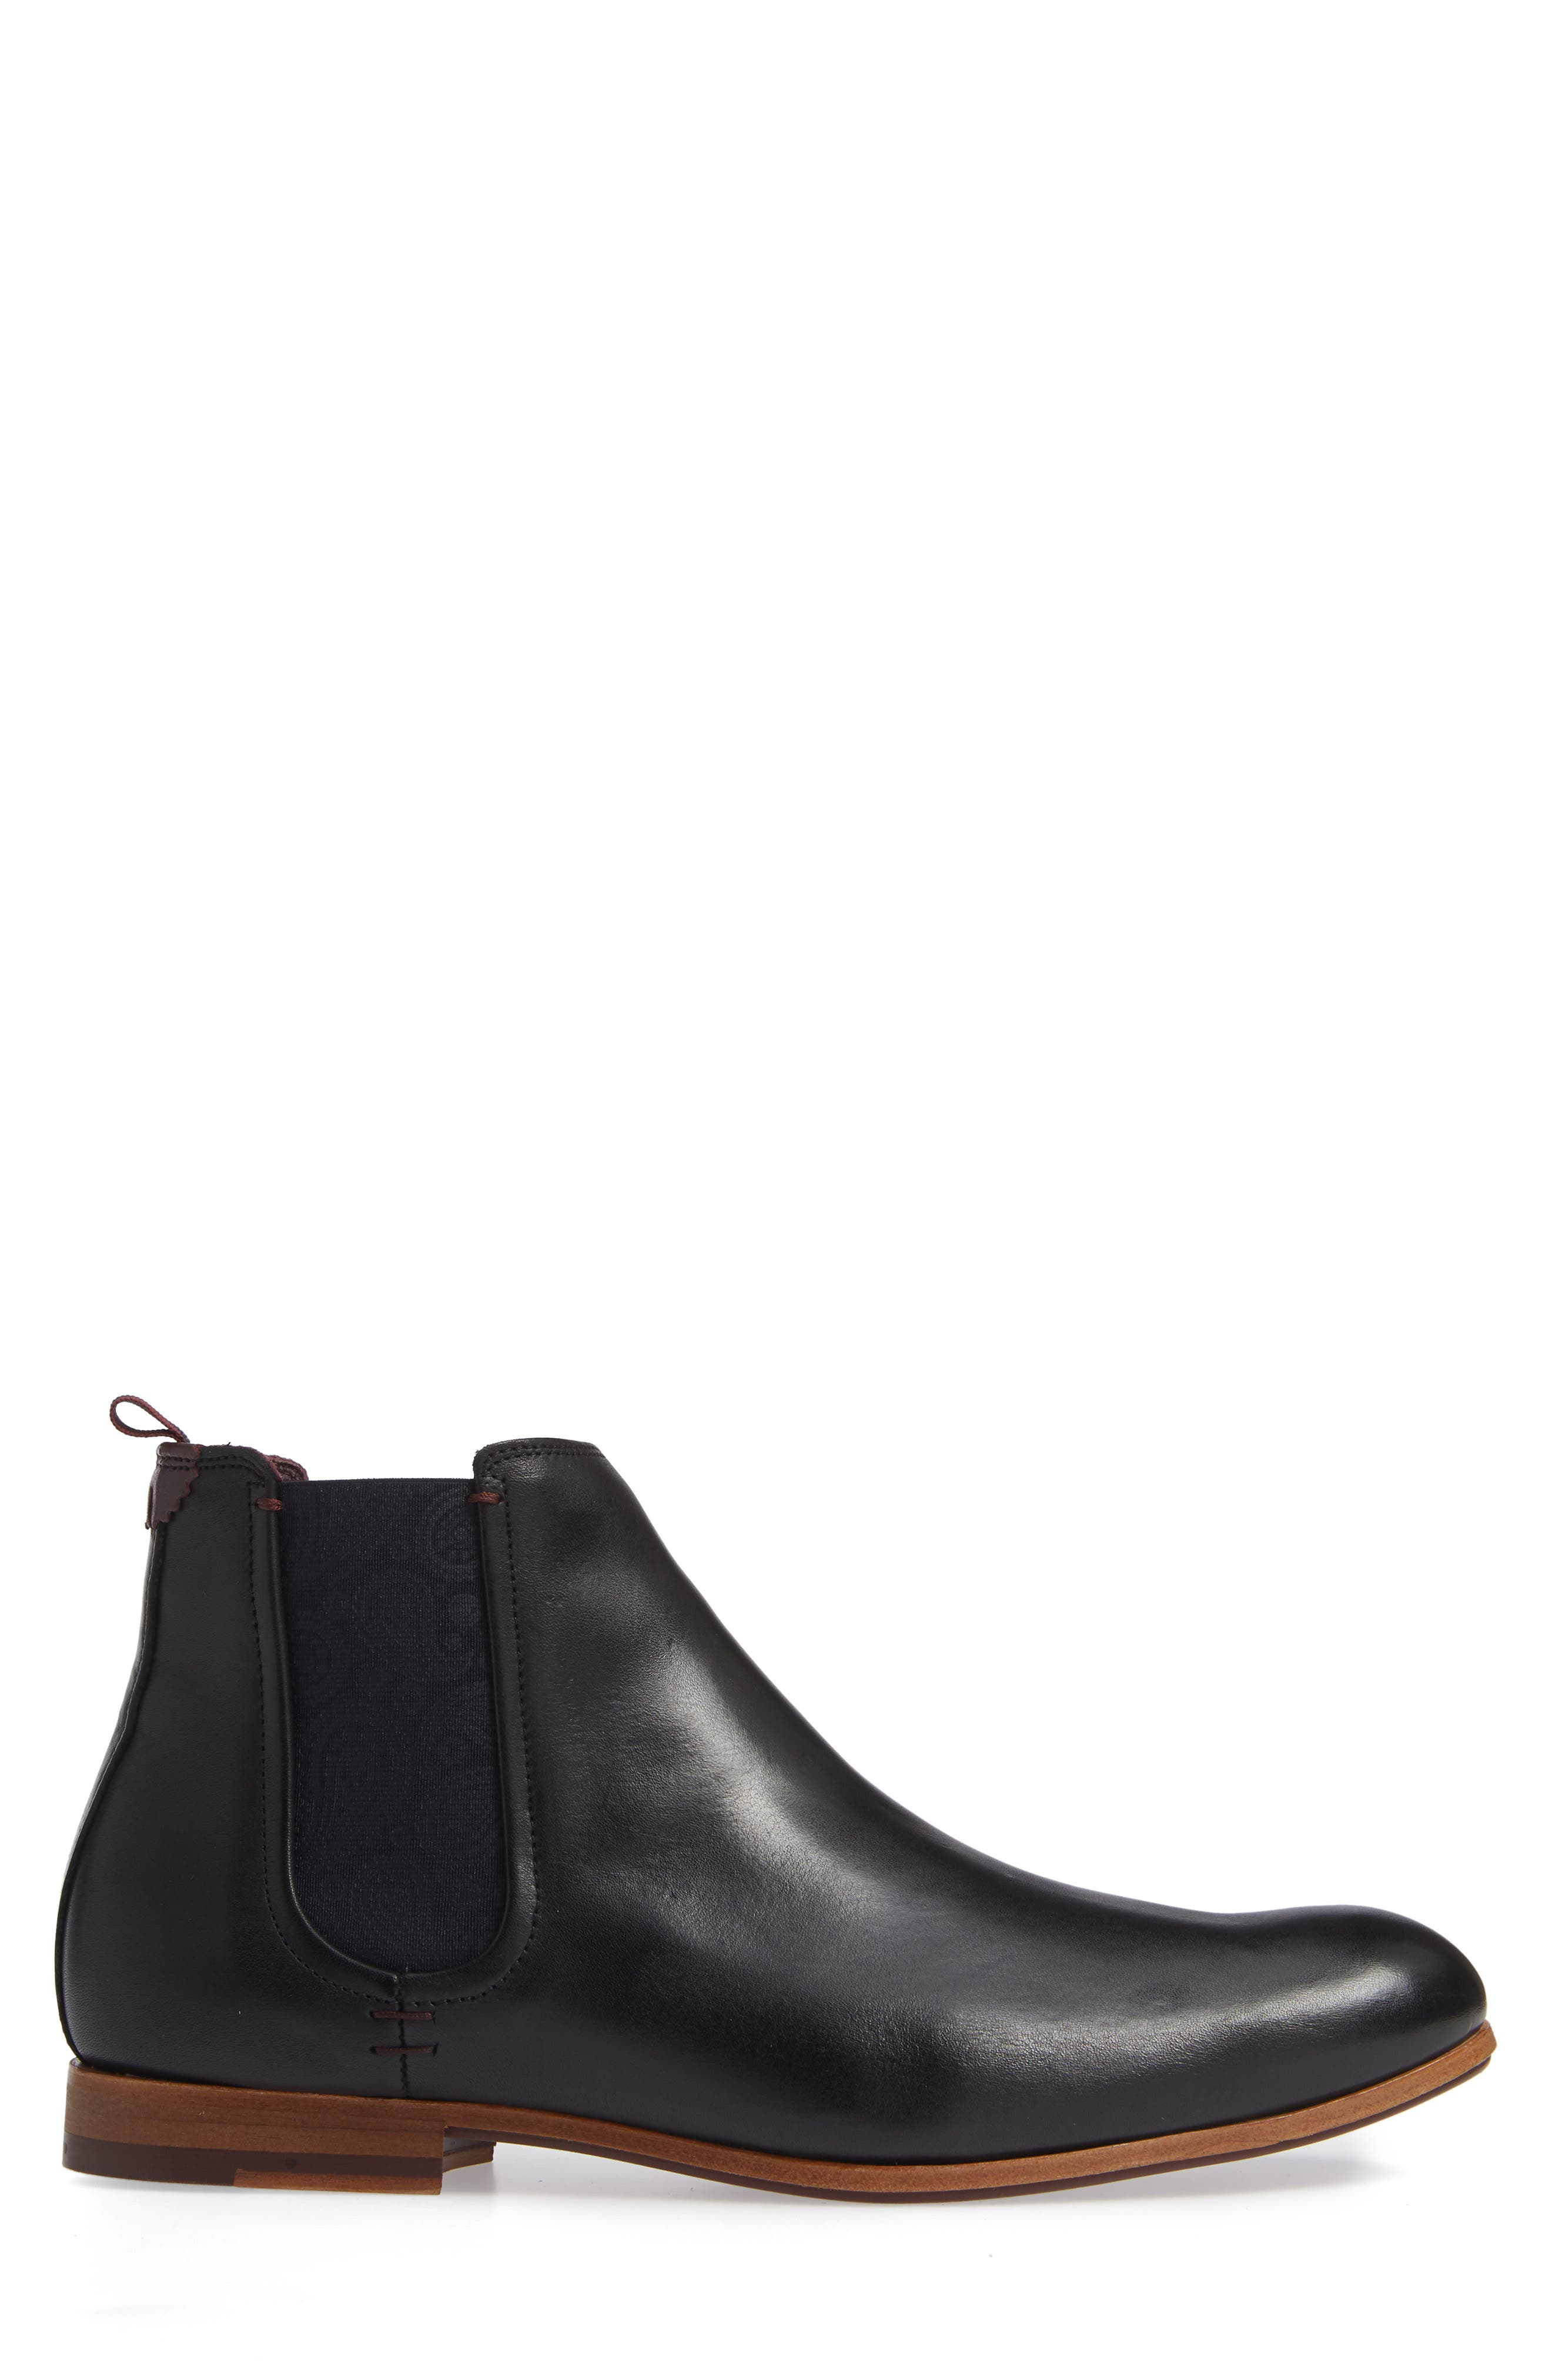 Whron Chelsea Boot,                             Alternate thumbnail 3, color,                             BLACK